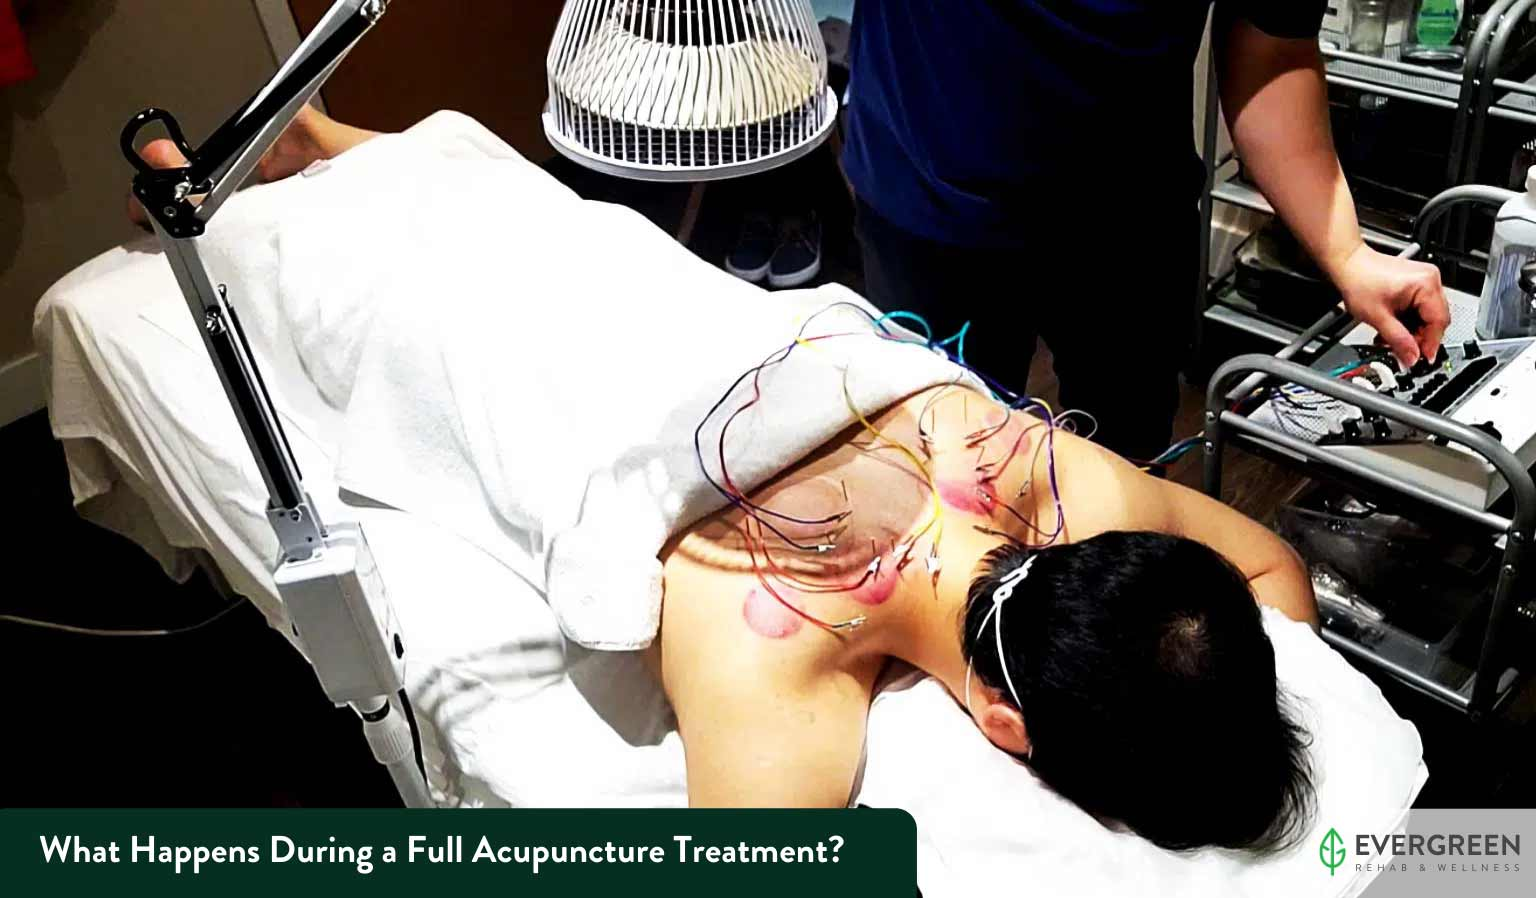 What Happens During a Full Acupuncture Treatment?